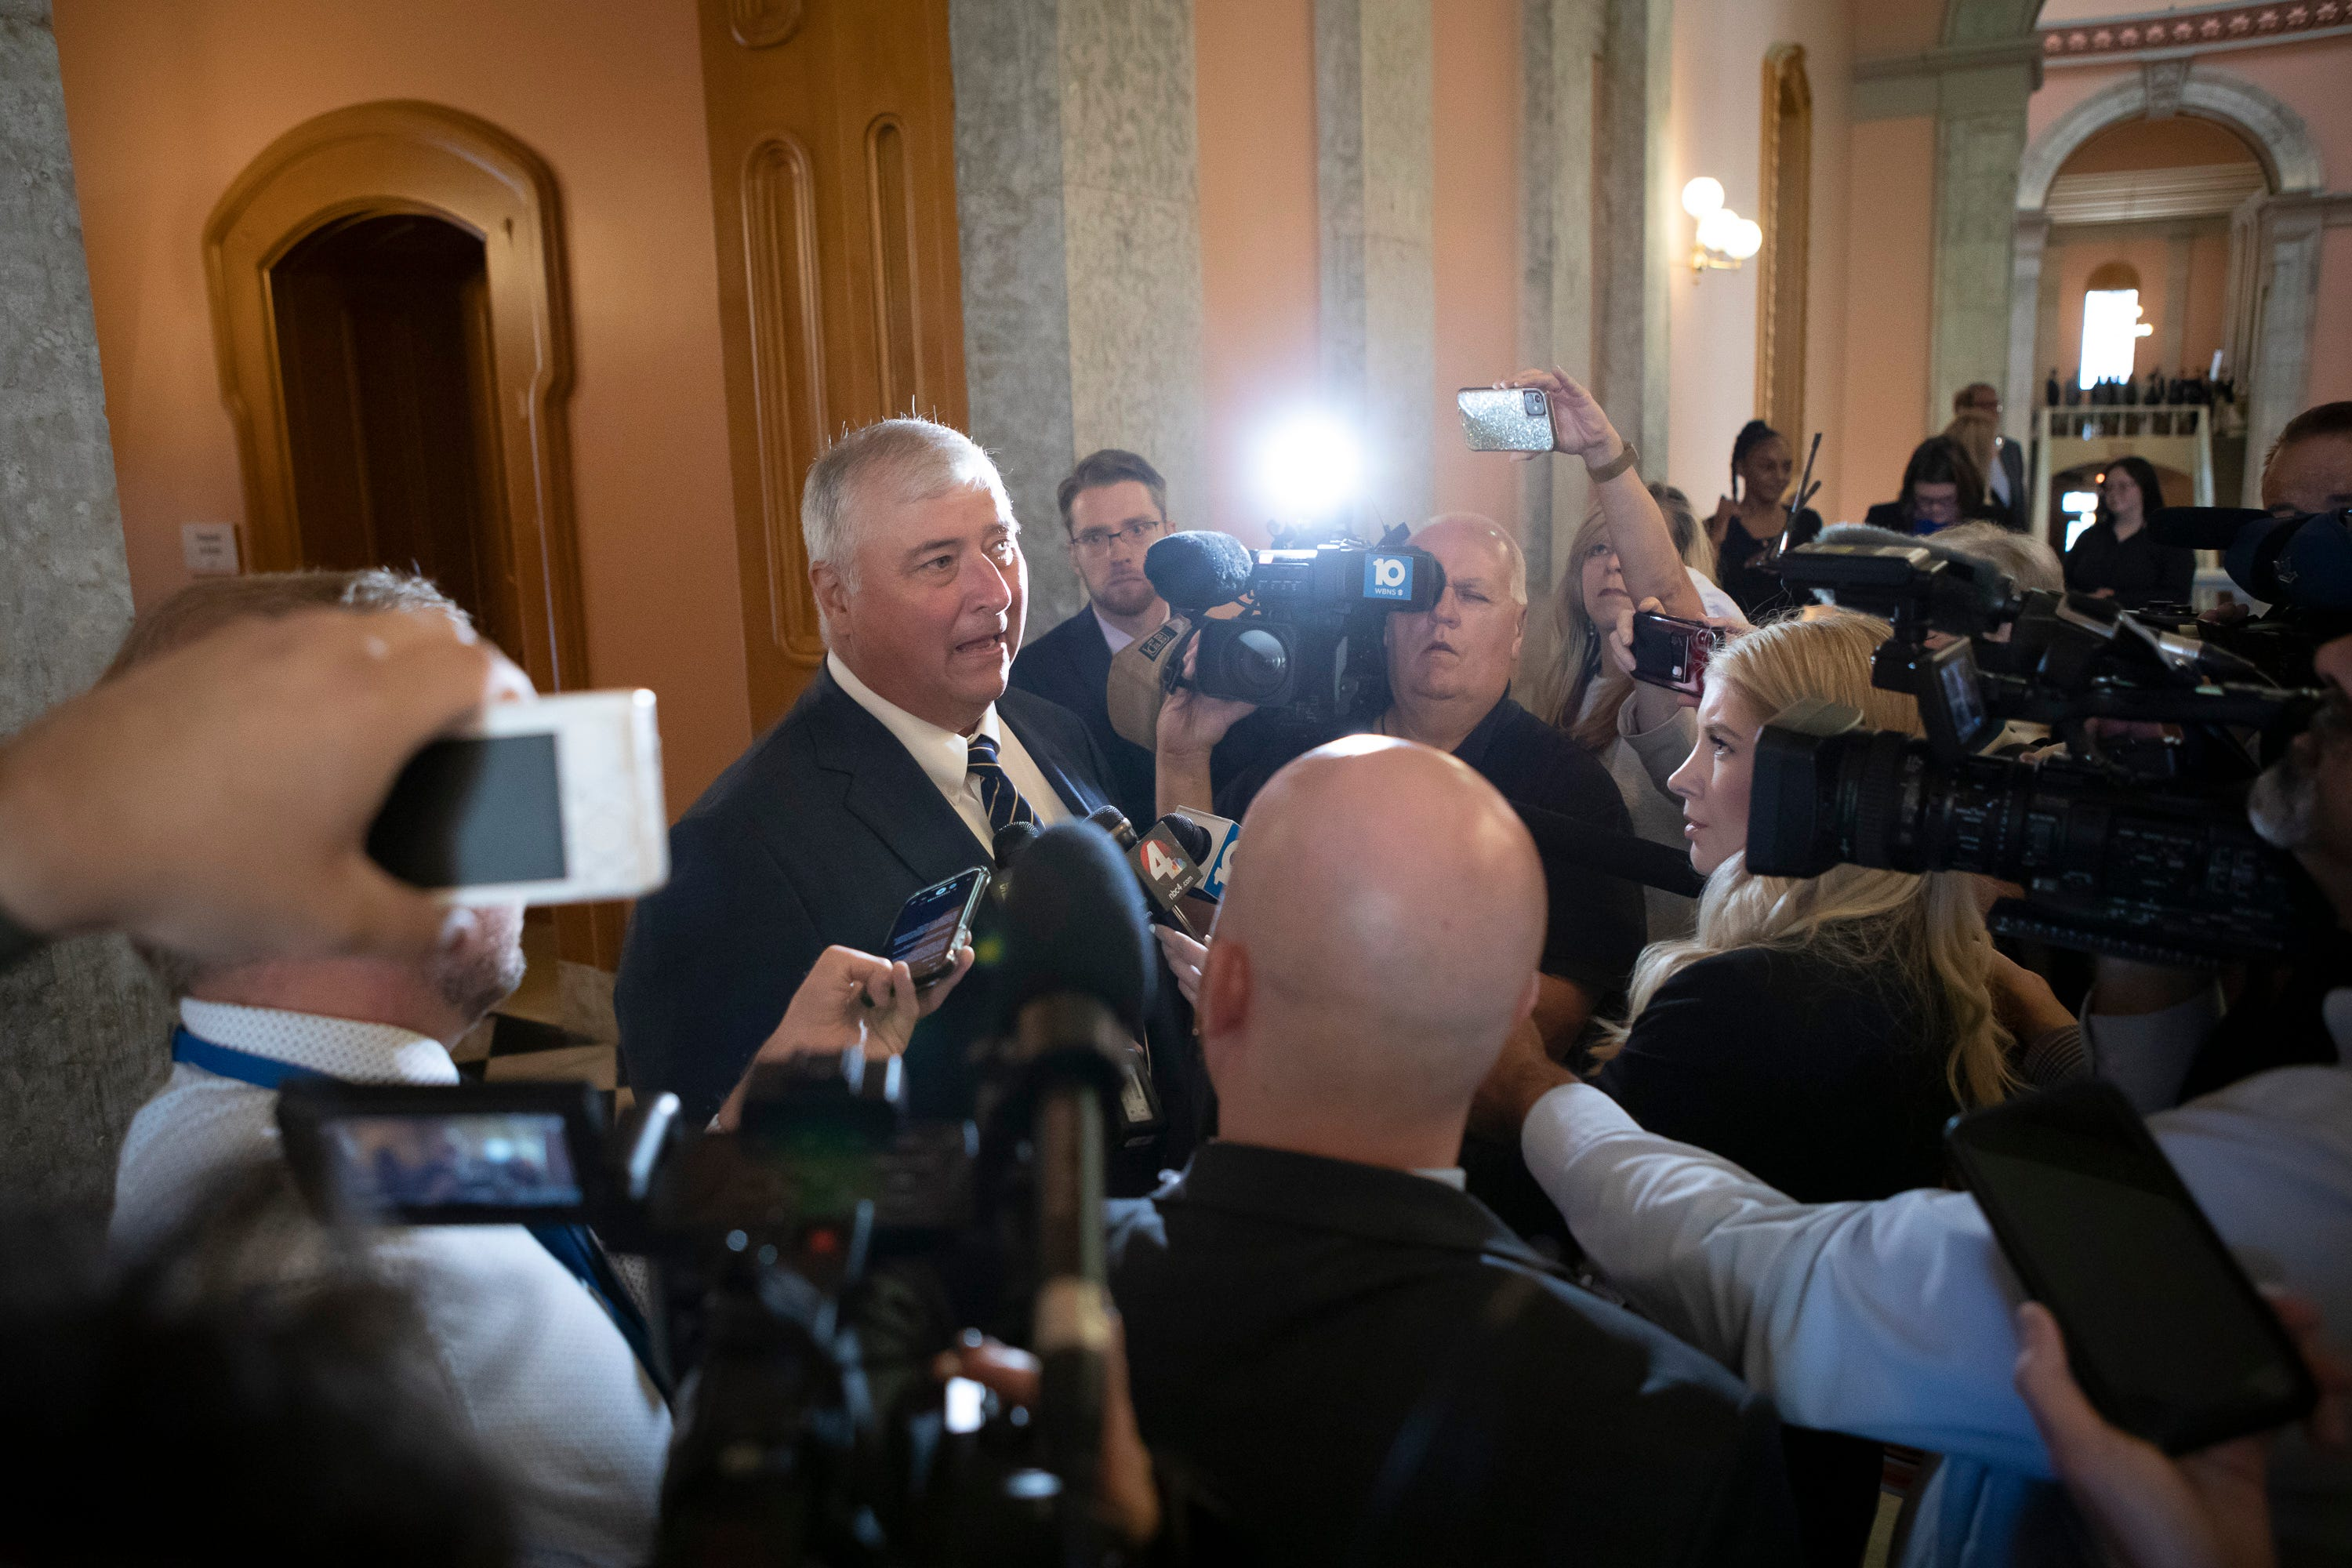 Larry Householder talks to reporters after being expelled as a representative in the Ohio House at the Ohio Statehouse in Columbus on Wednesday, June 16, 2021.